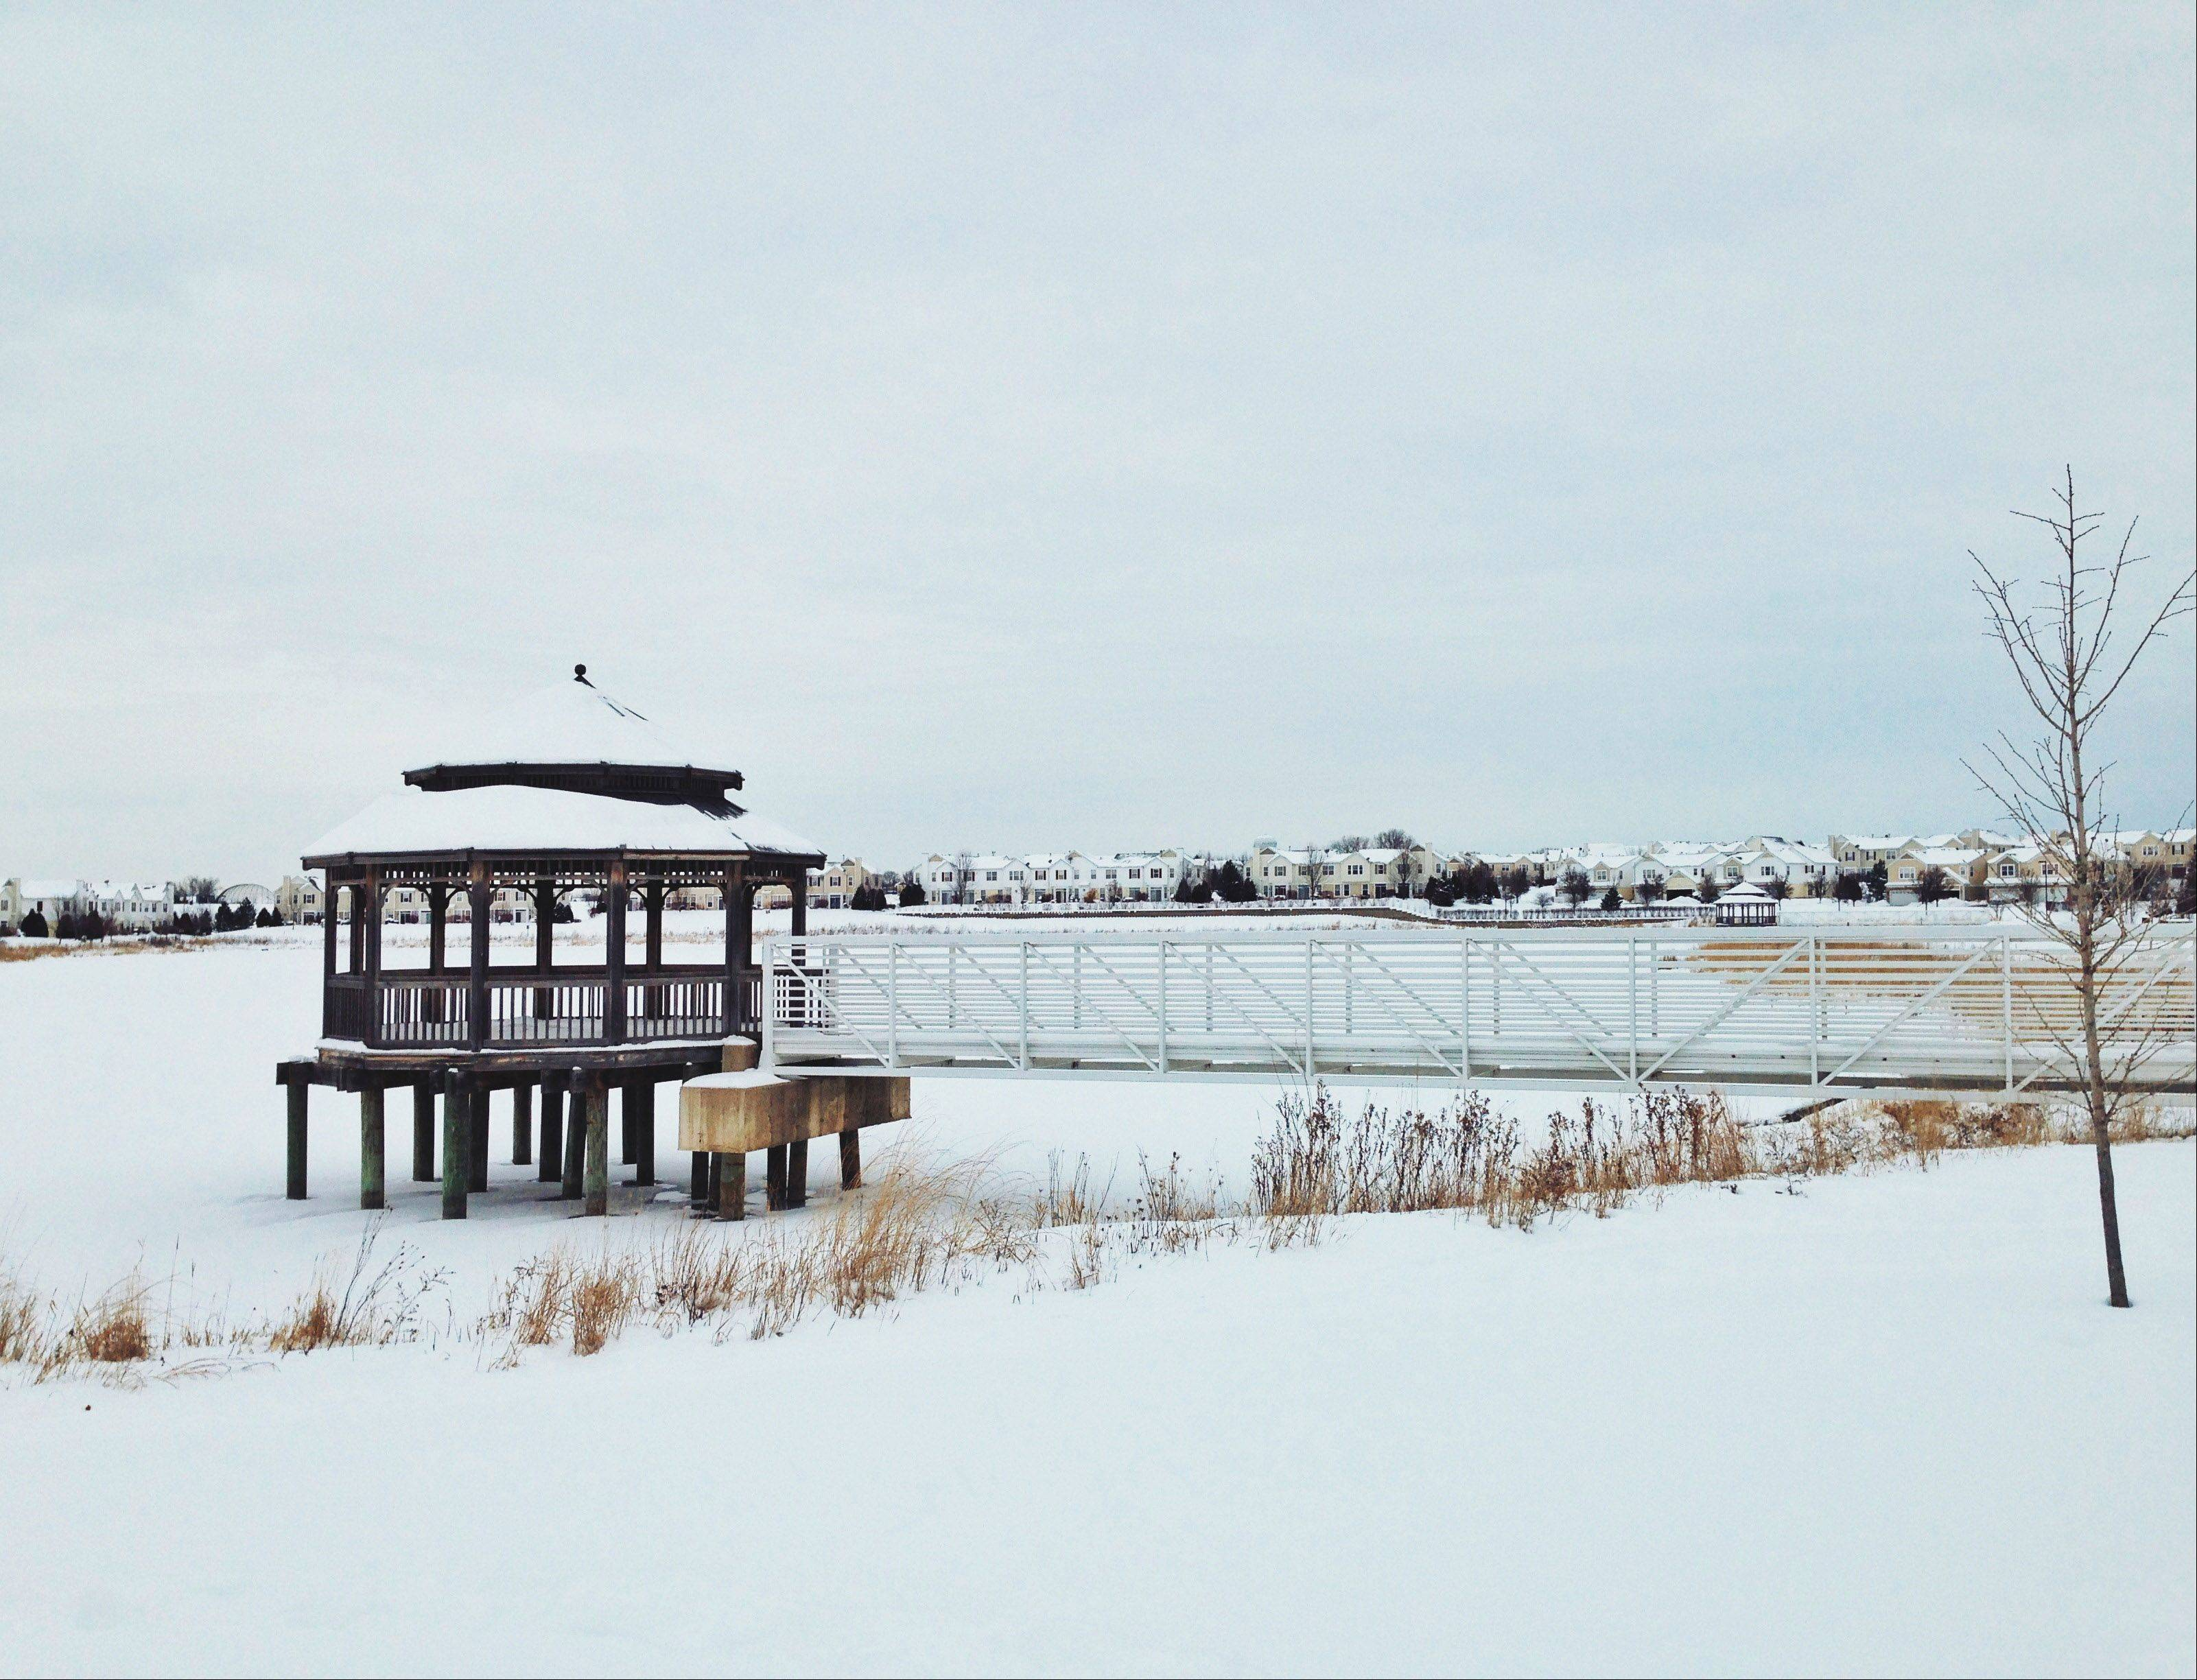 As I was passing by the lake I saw this gazebo and thought it looked just so stoic, jutting out like that over the frozen water, coated in snow in the -10 degree weather. So, I quickly parked on the side of the road and snapped a few pictures with my phone. I think it was well worth it.